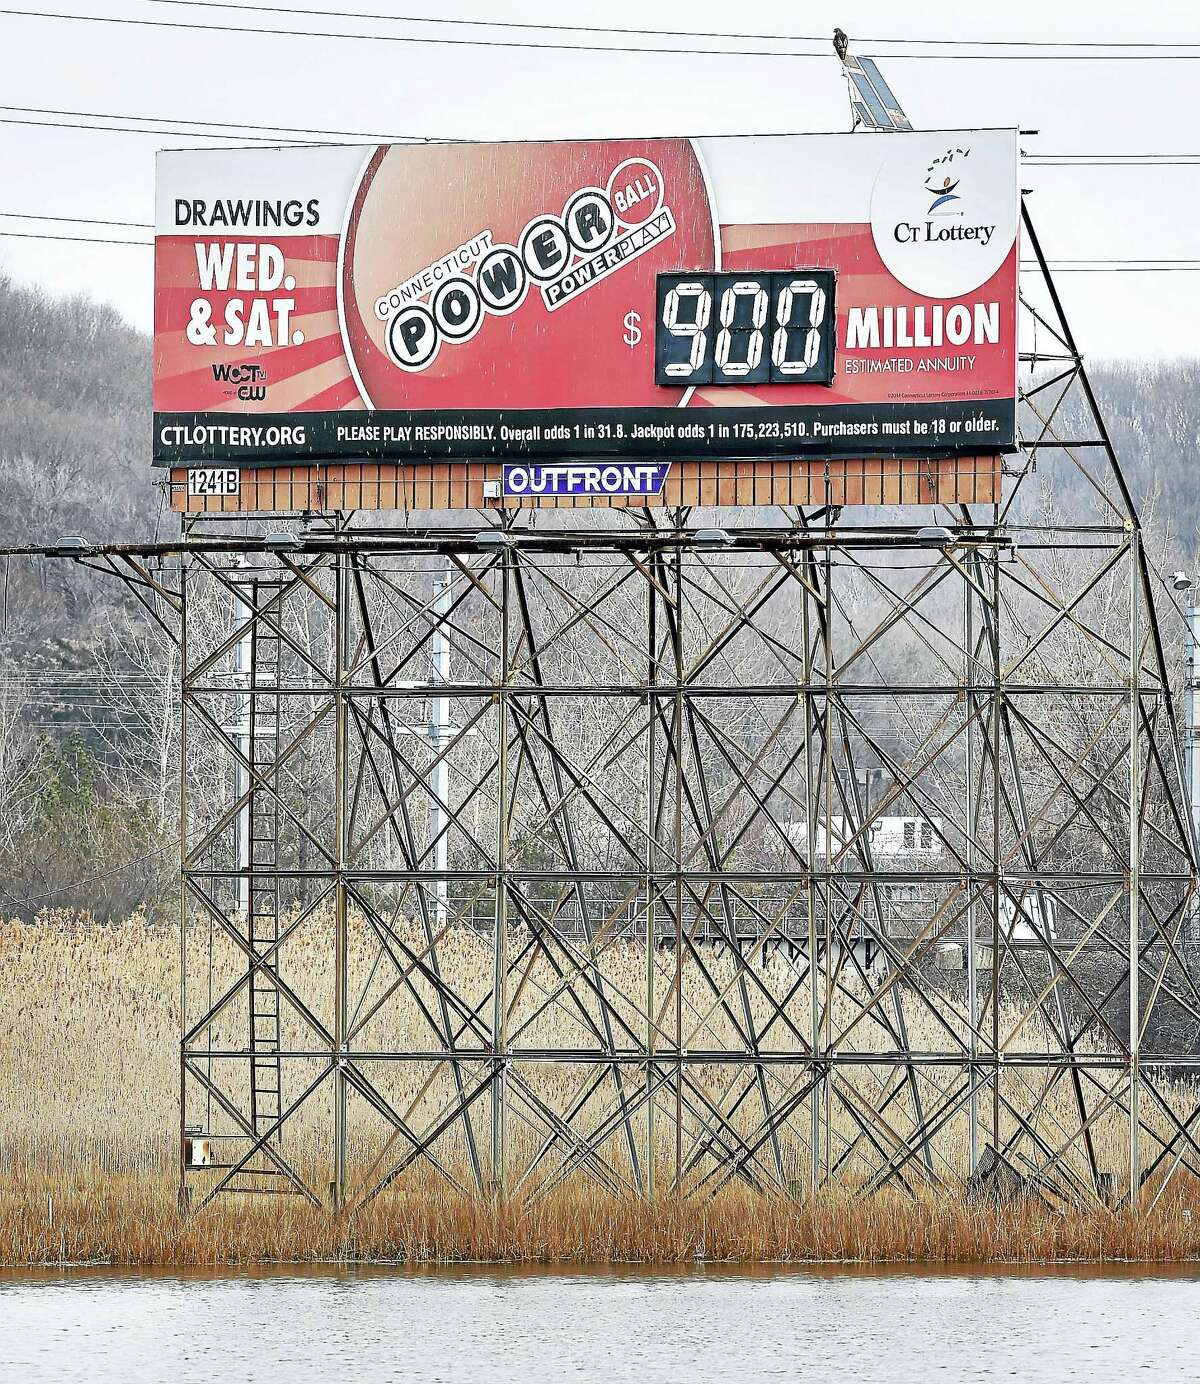 A Powerball sign overlooking the Quninnpiac River in New Haven reads 900 million as the jackpot for a drawing on 1/9/2016.